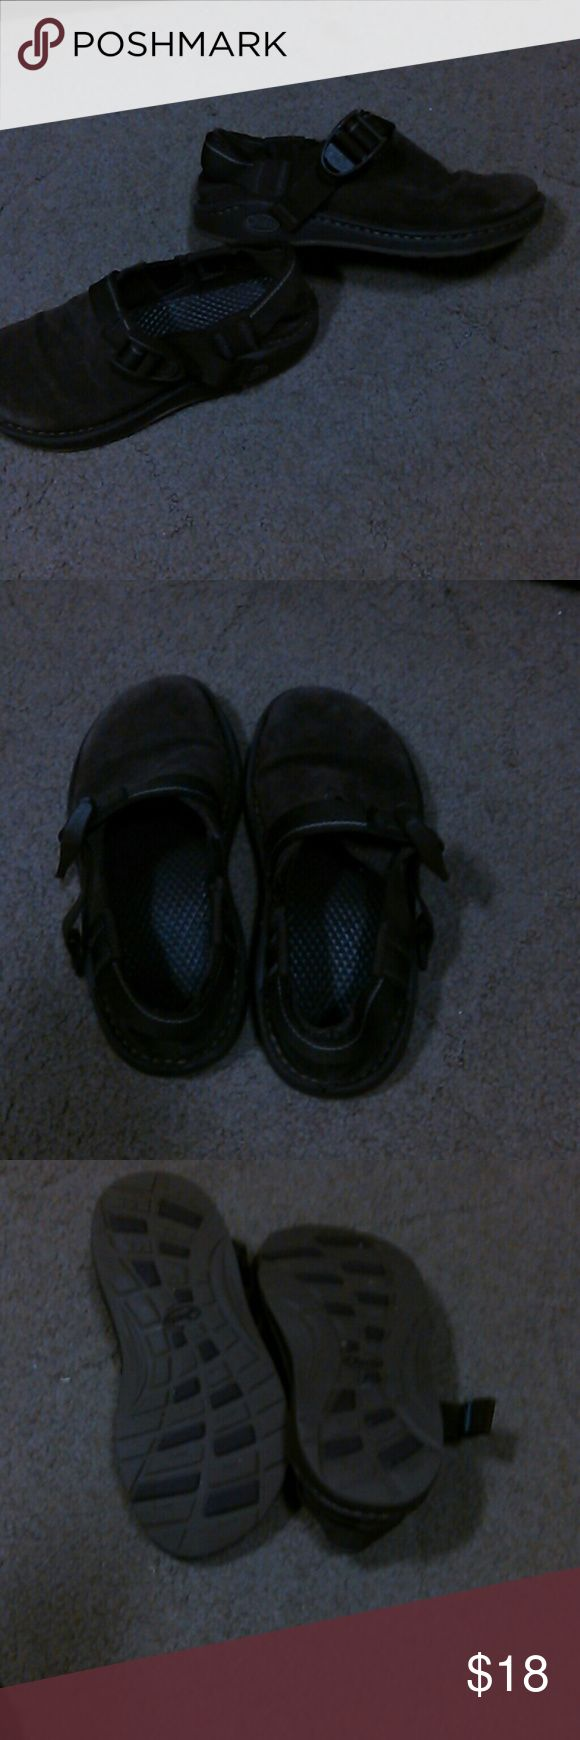 Chacos kids brown suede These are shoes not the sandles  these are brown suede great condition Chacos Shoes